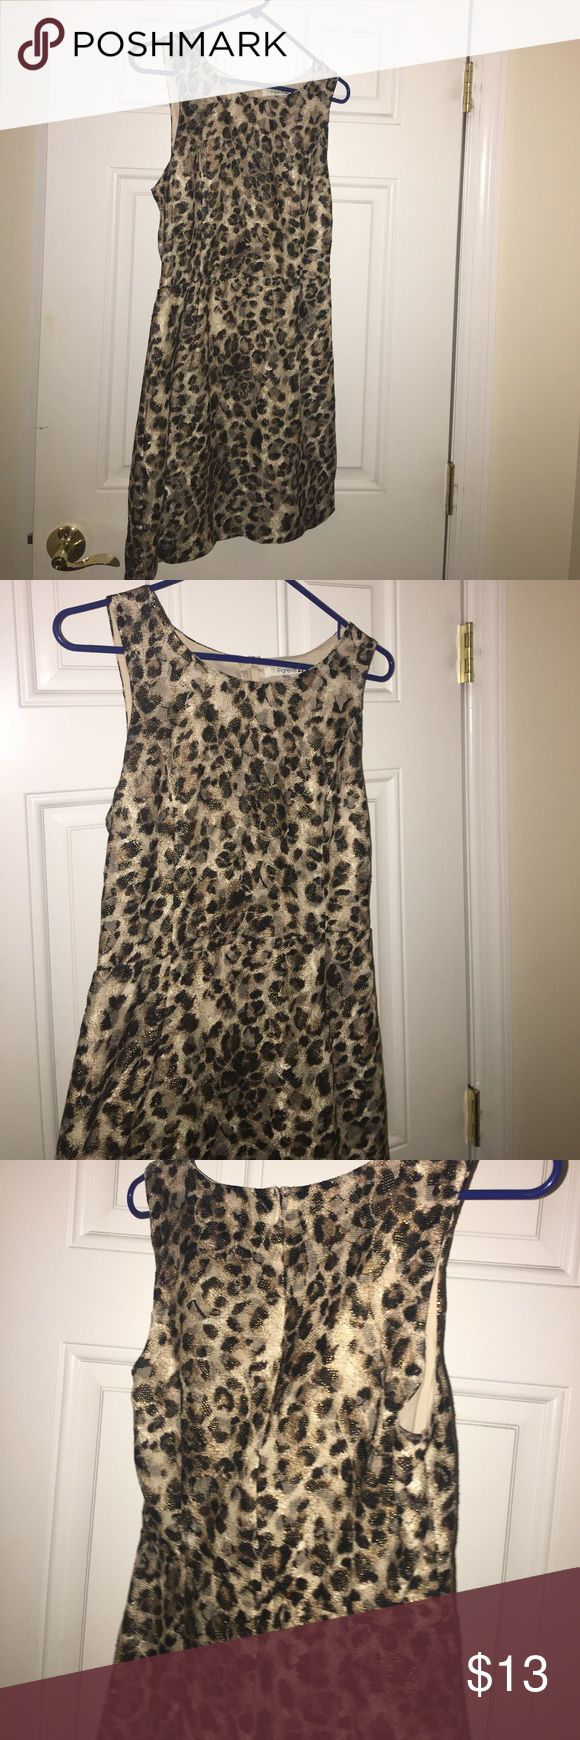 Cheetah dress Cute formal/business casual cheetah dress. Pretty much New only worn once. Forever 21 Dresses